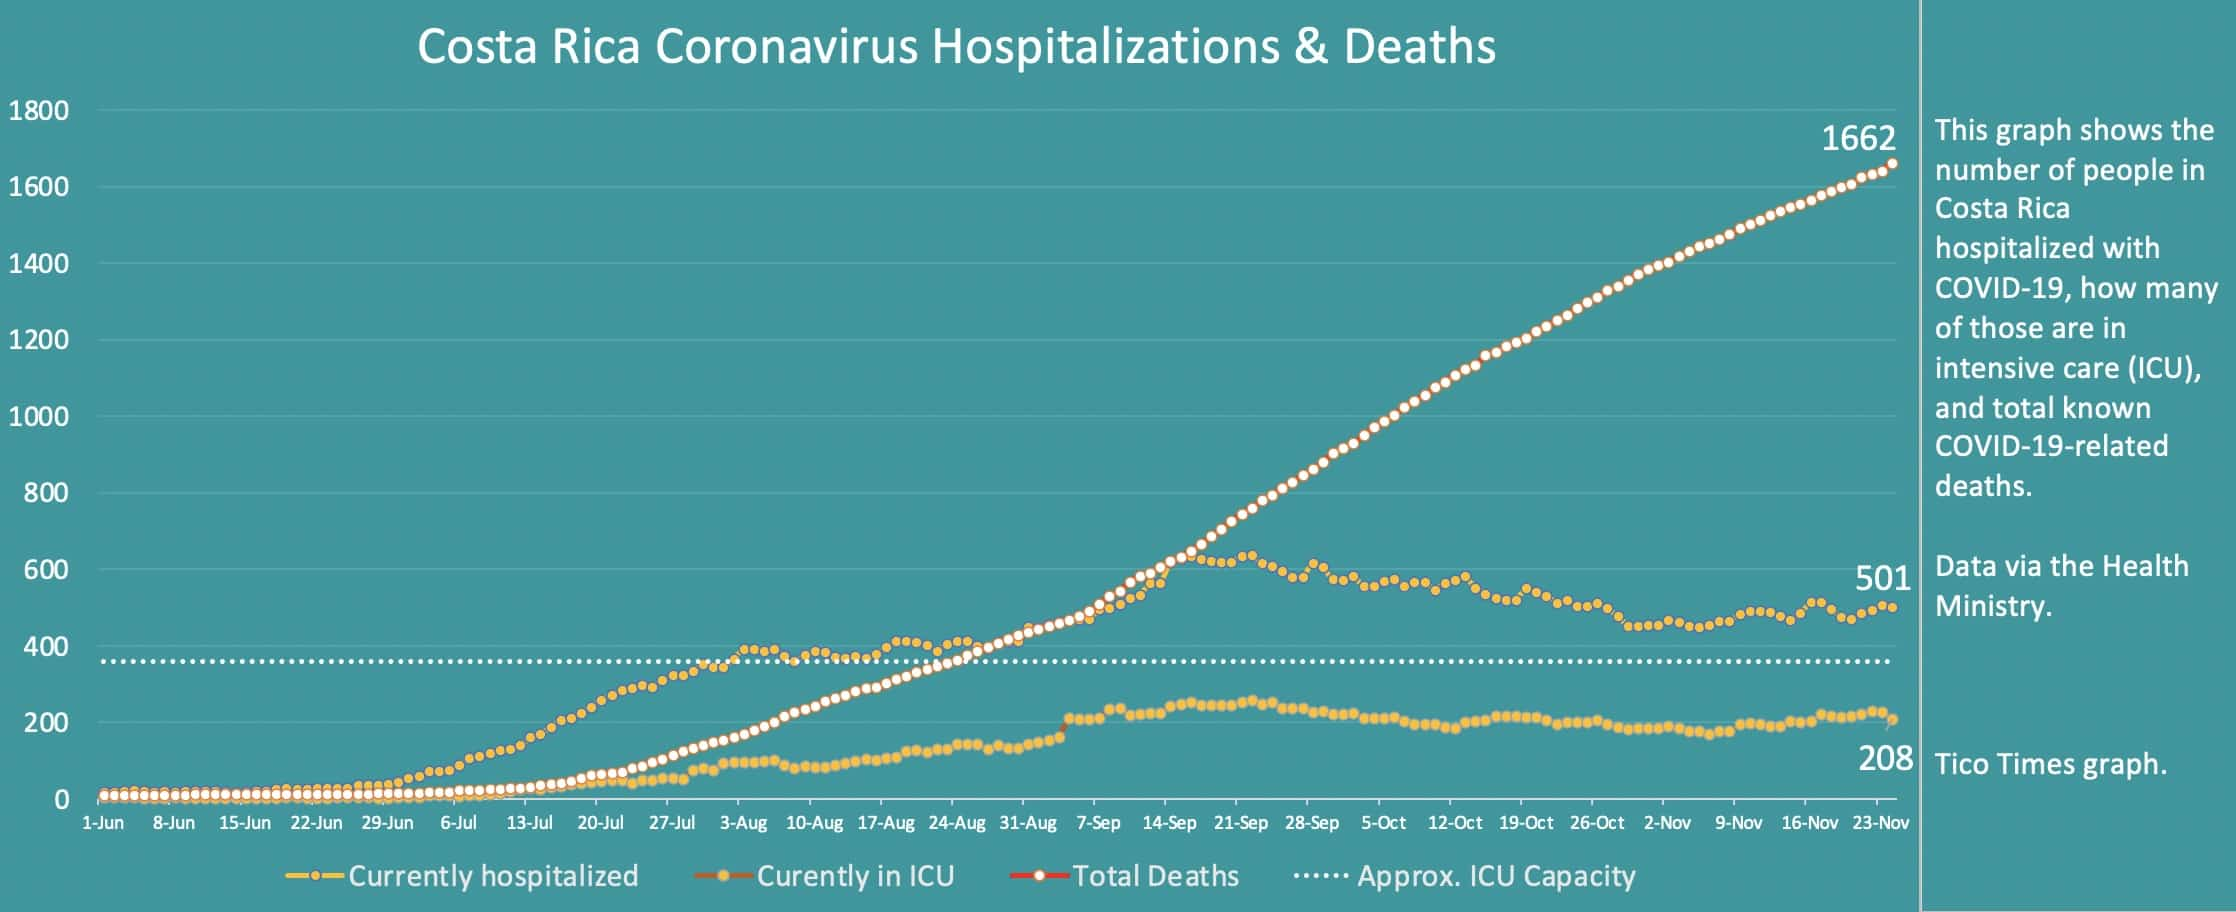 Costa Rica coronavirus hospitalizations and deaths on November 24, 2020.